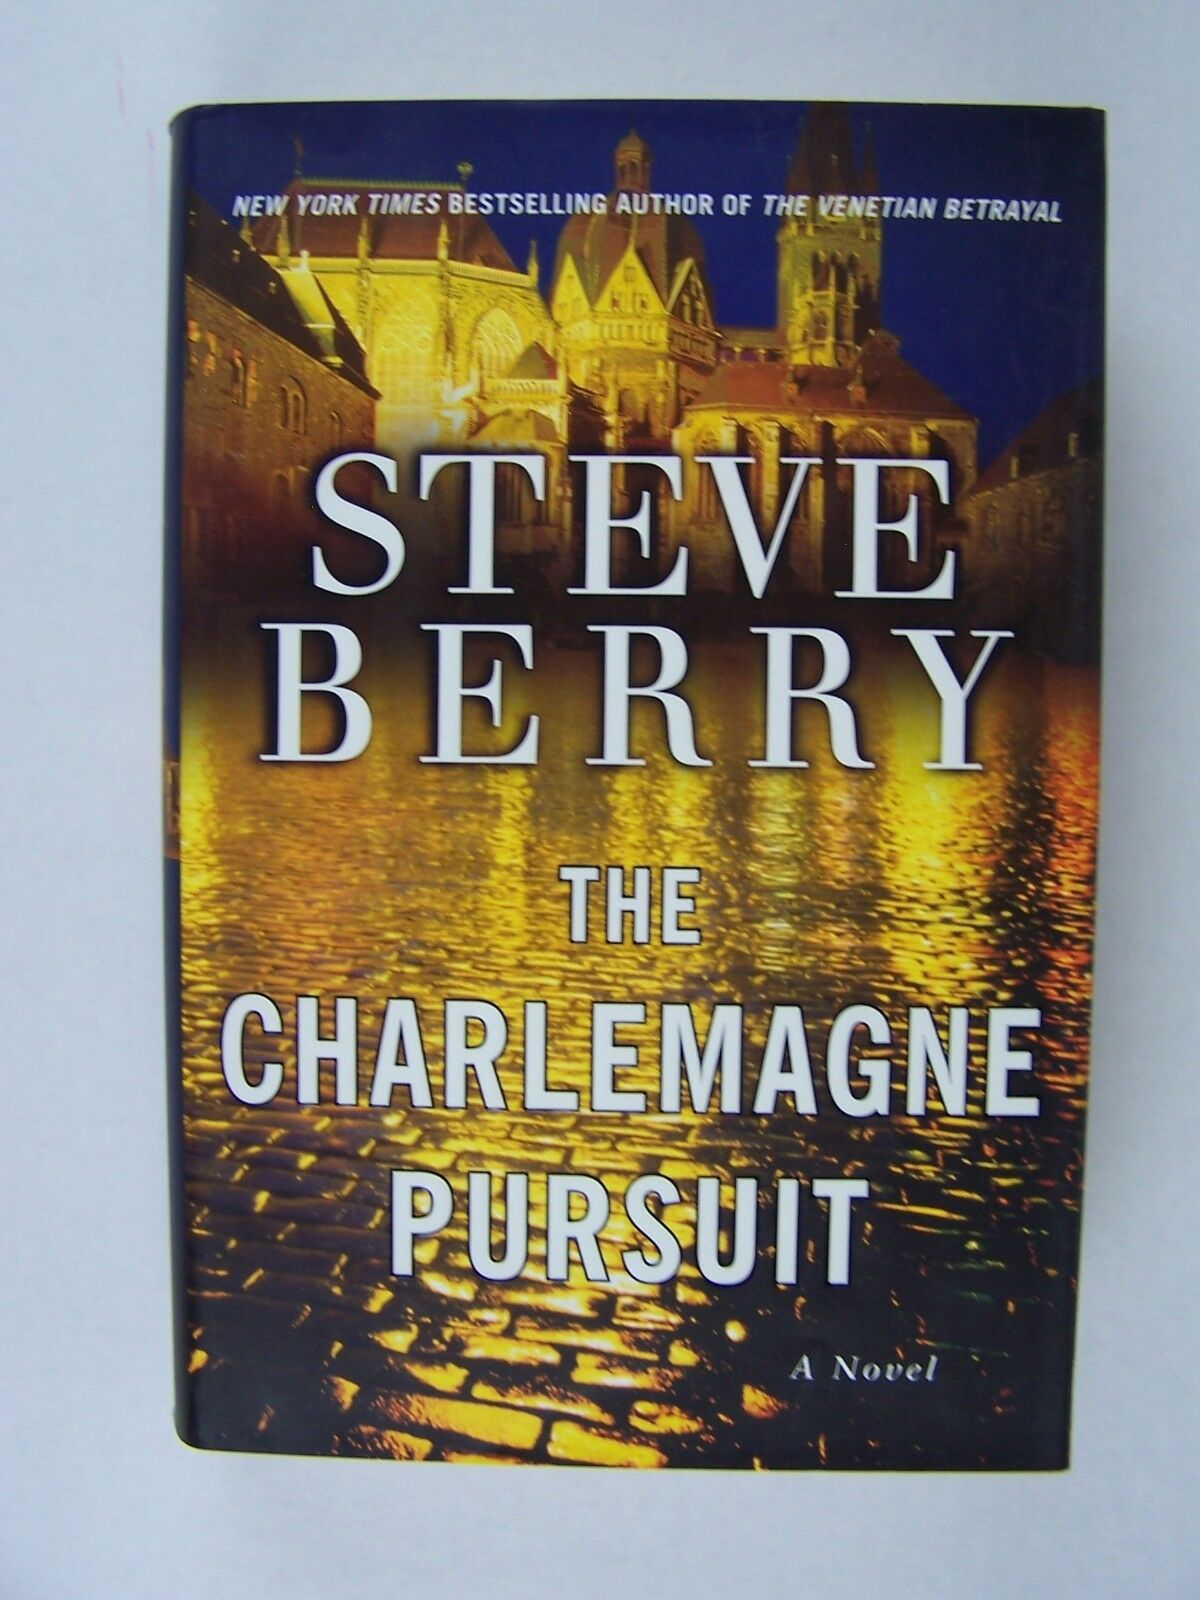 Steve Berry The Charlemagne Pursuit: A Novel Hardcover